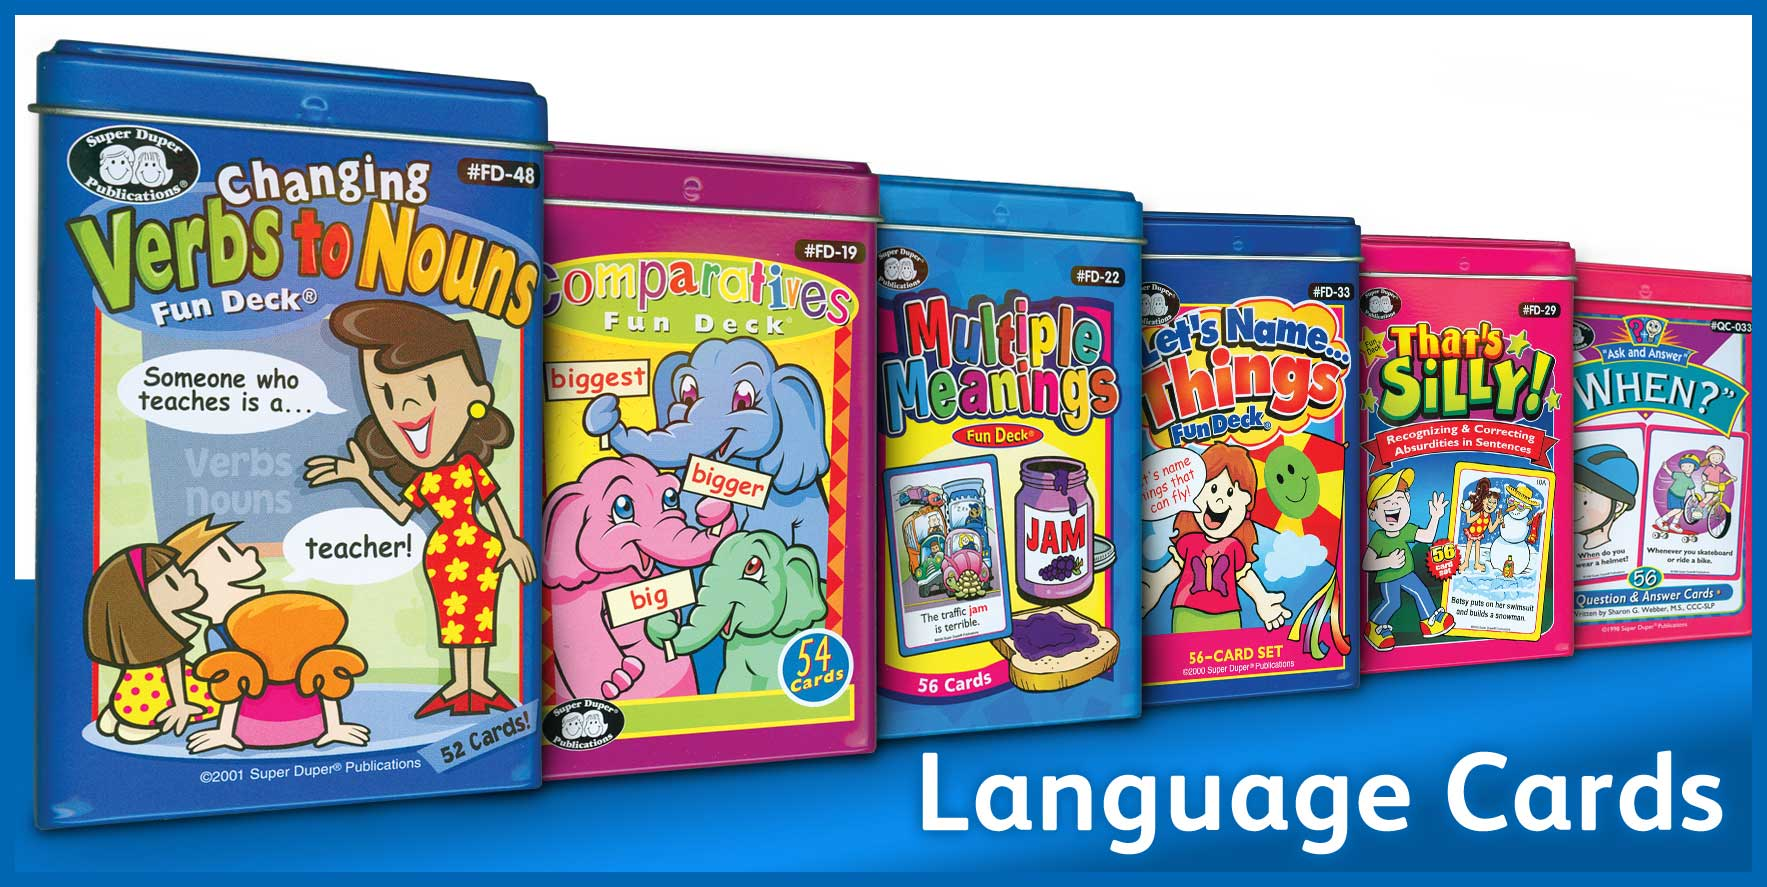 Shop for Language Cards